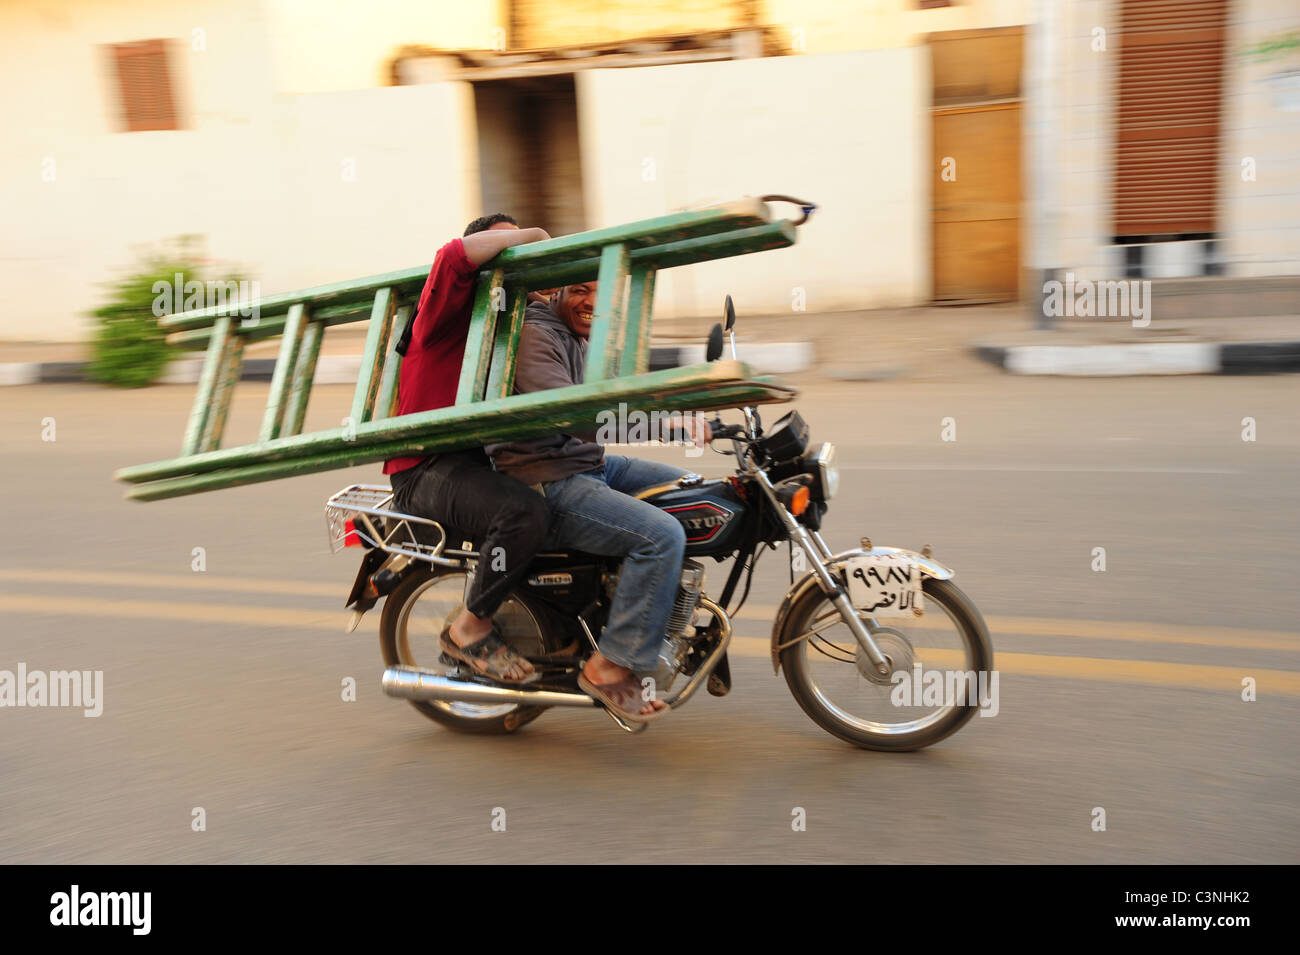 africa-middle-east-egypt-egyptian-luxor-men-riding-on-a-motorcycle-C3NHK2.jpg